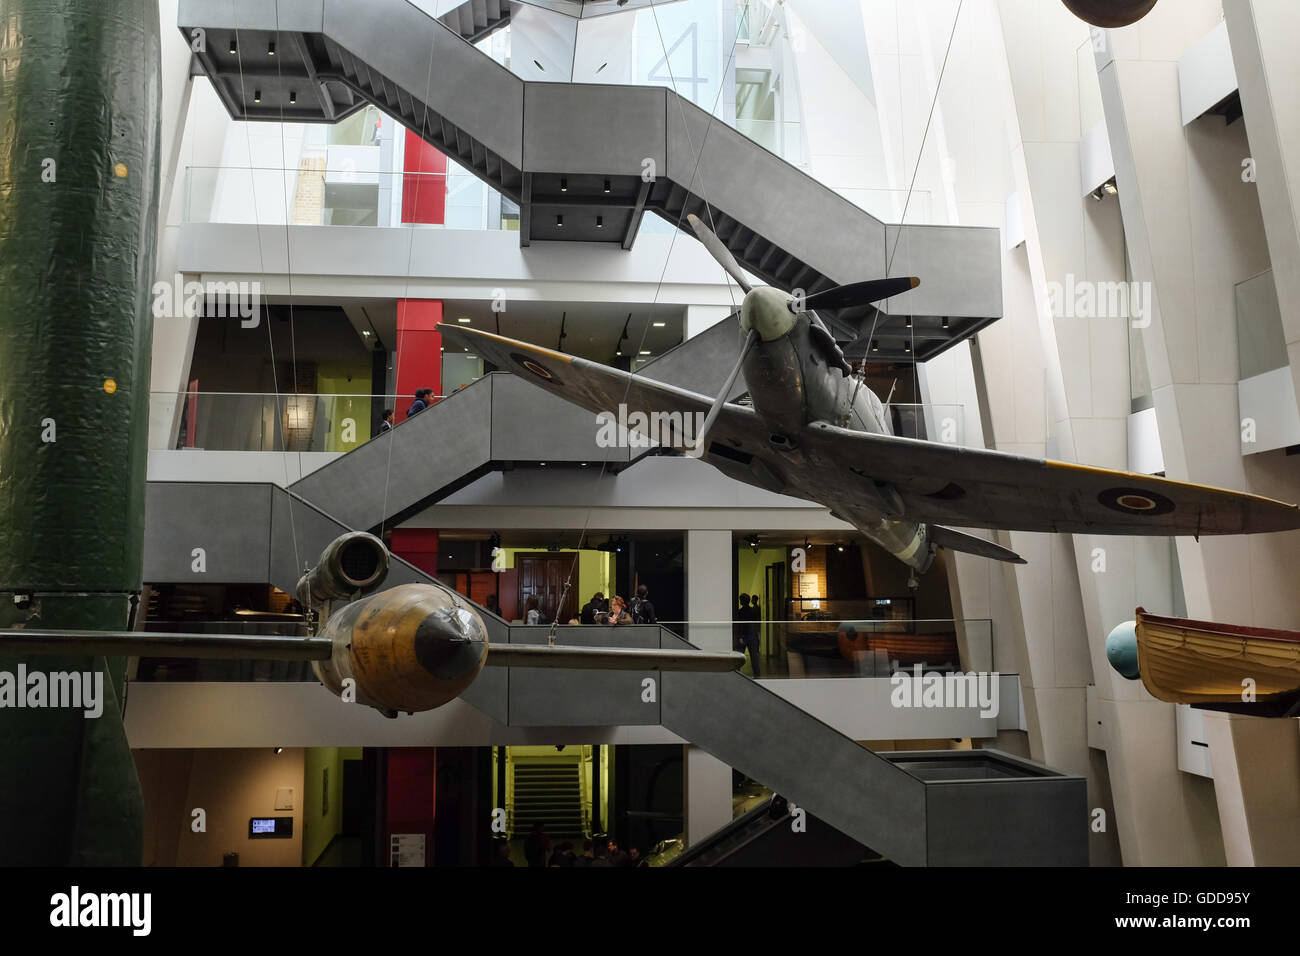 The main interior of the Imperial War Museum in London, England. - Stock Image